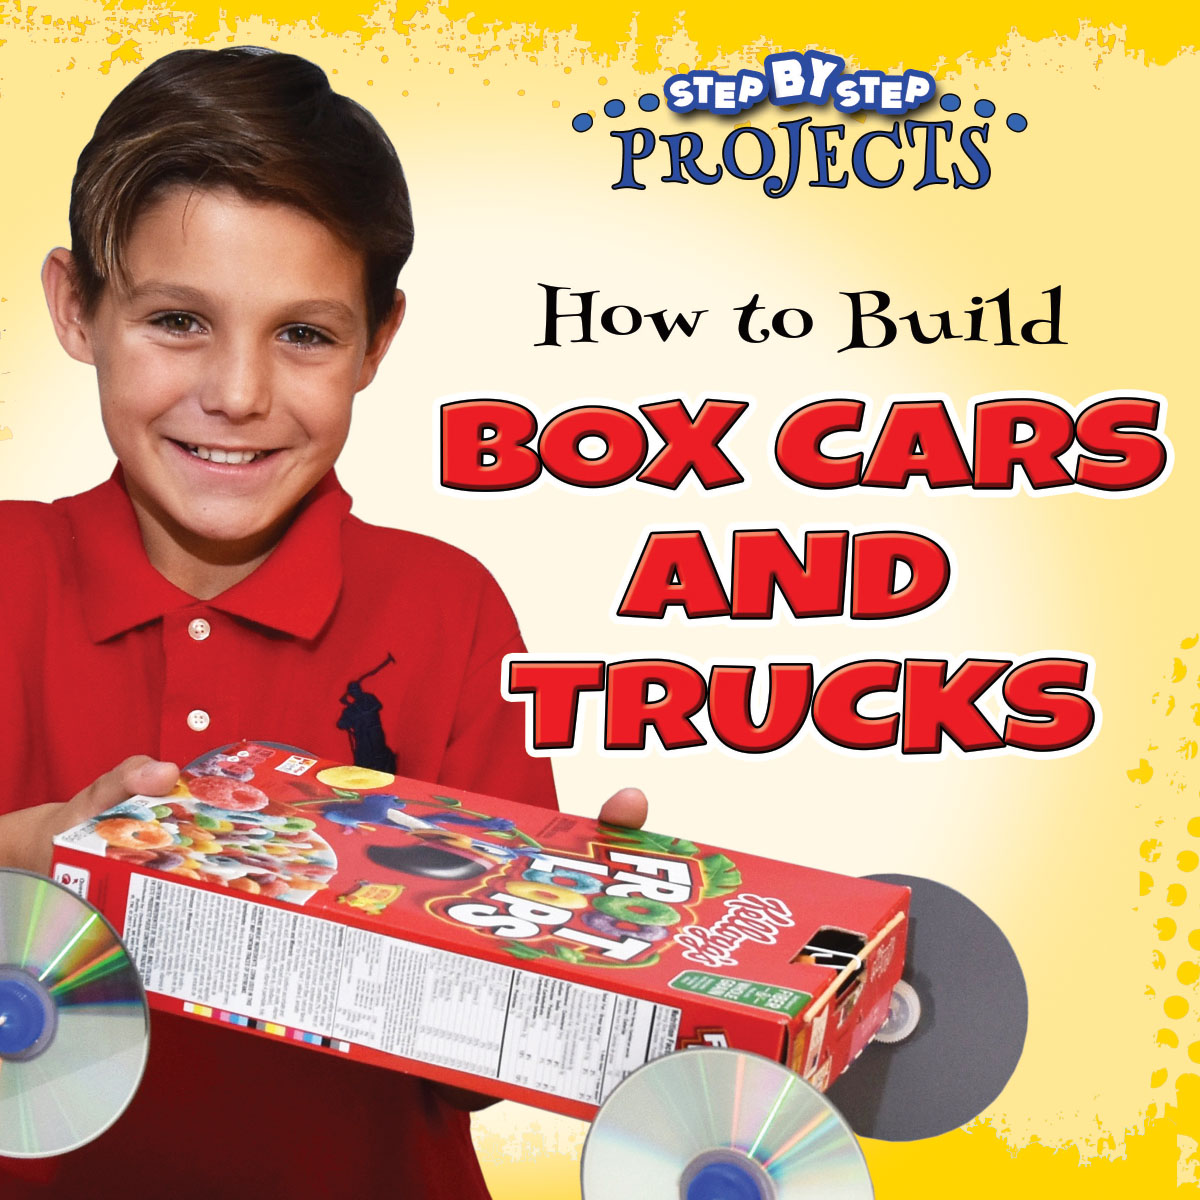 How to Build Box Cars and Trucks